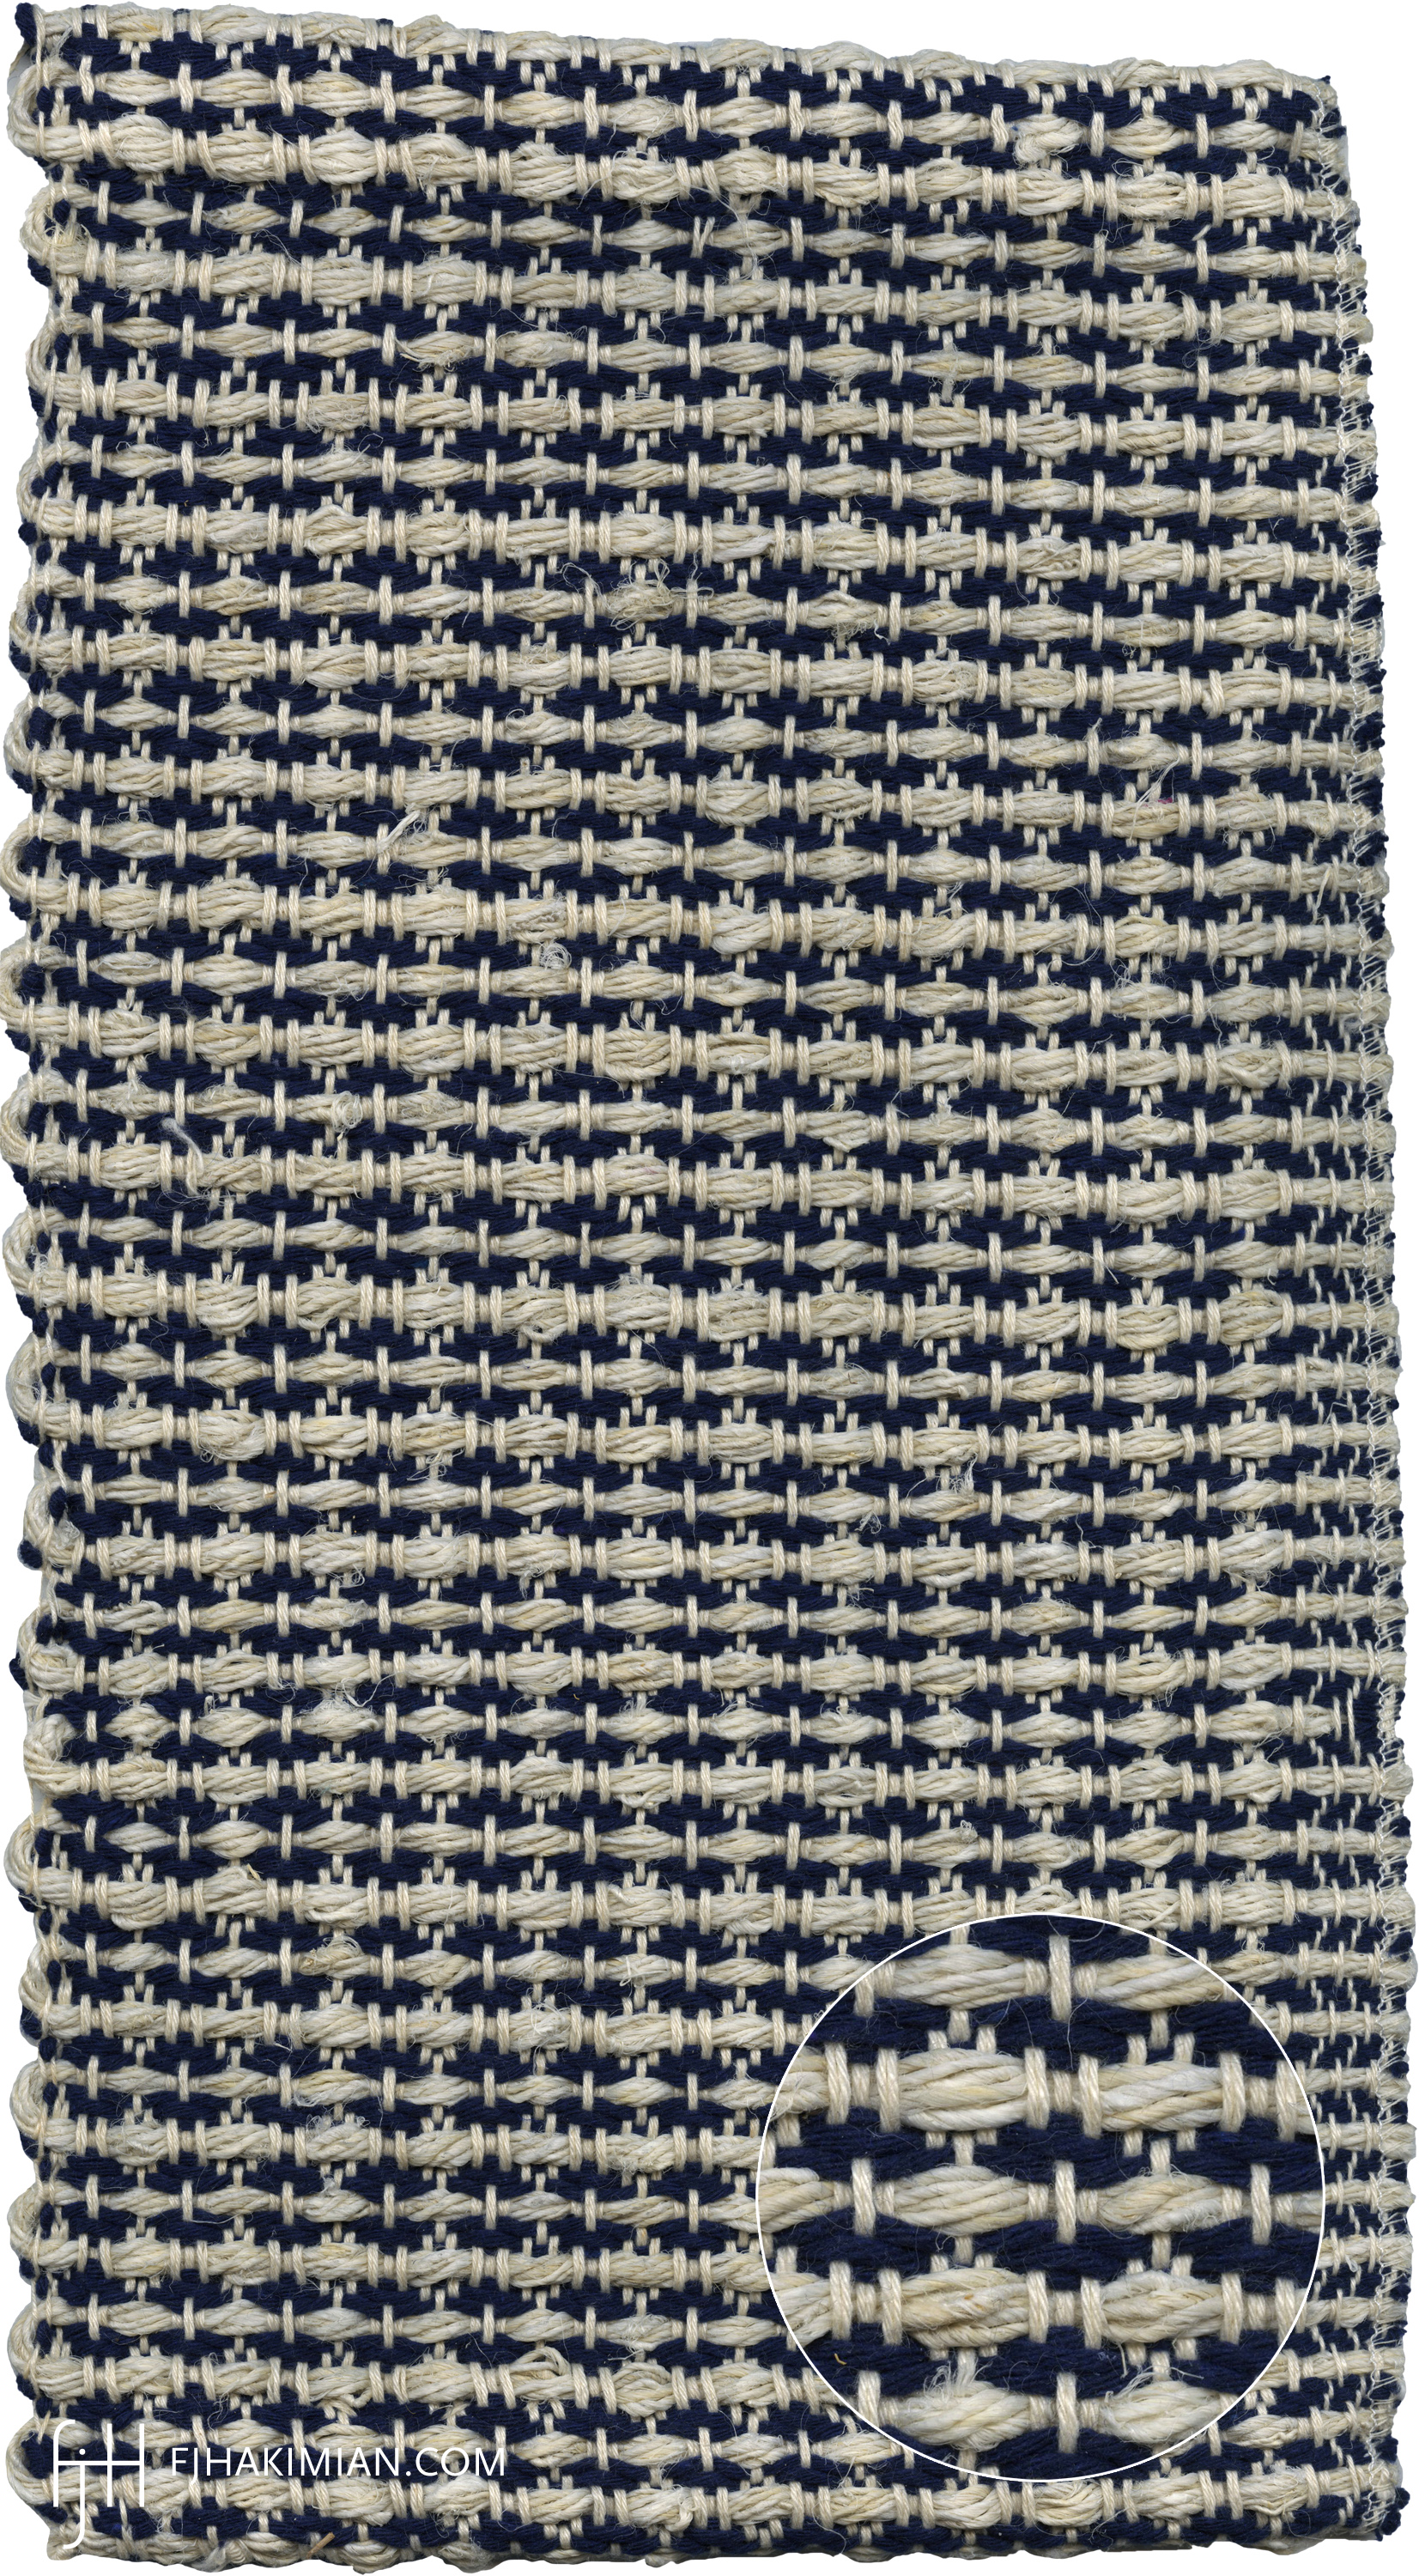 IF-Sardinian-Cotton-Bleached Hemp-Mat Sample1-FJ Hakimian